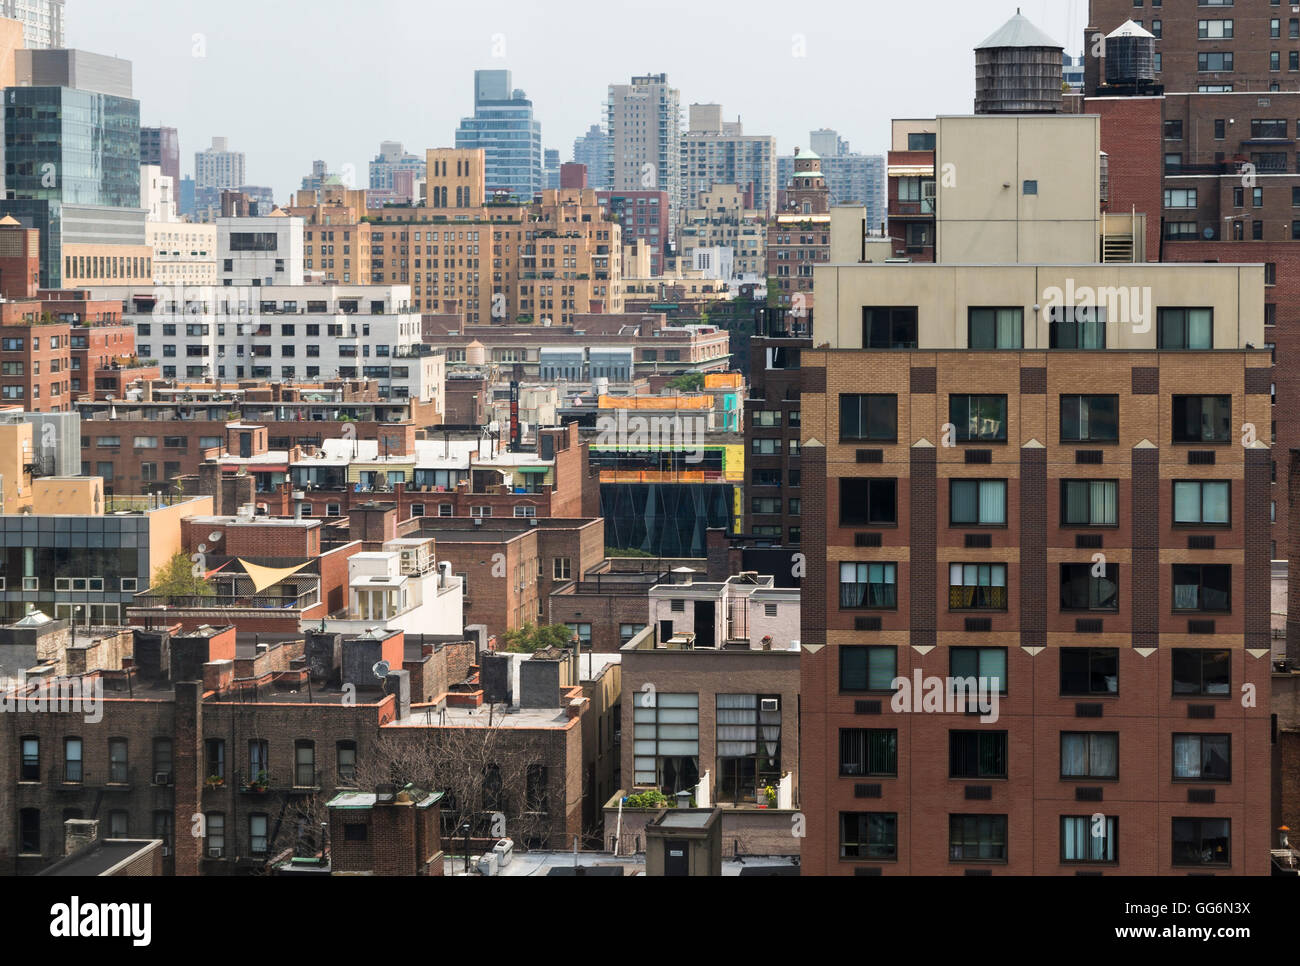 View of rooftops and buildings in skyline of Lenox Hill area of New York City - Stock Image